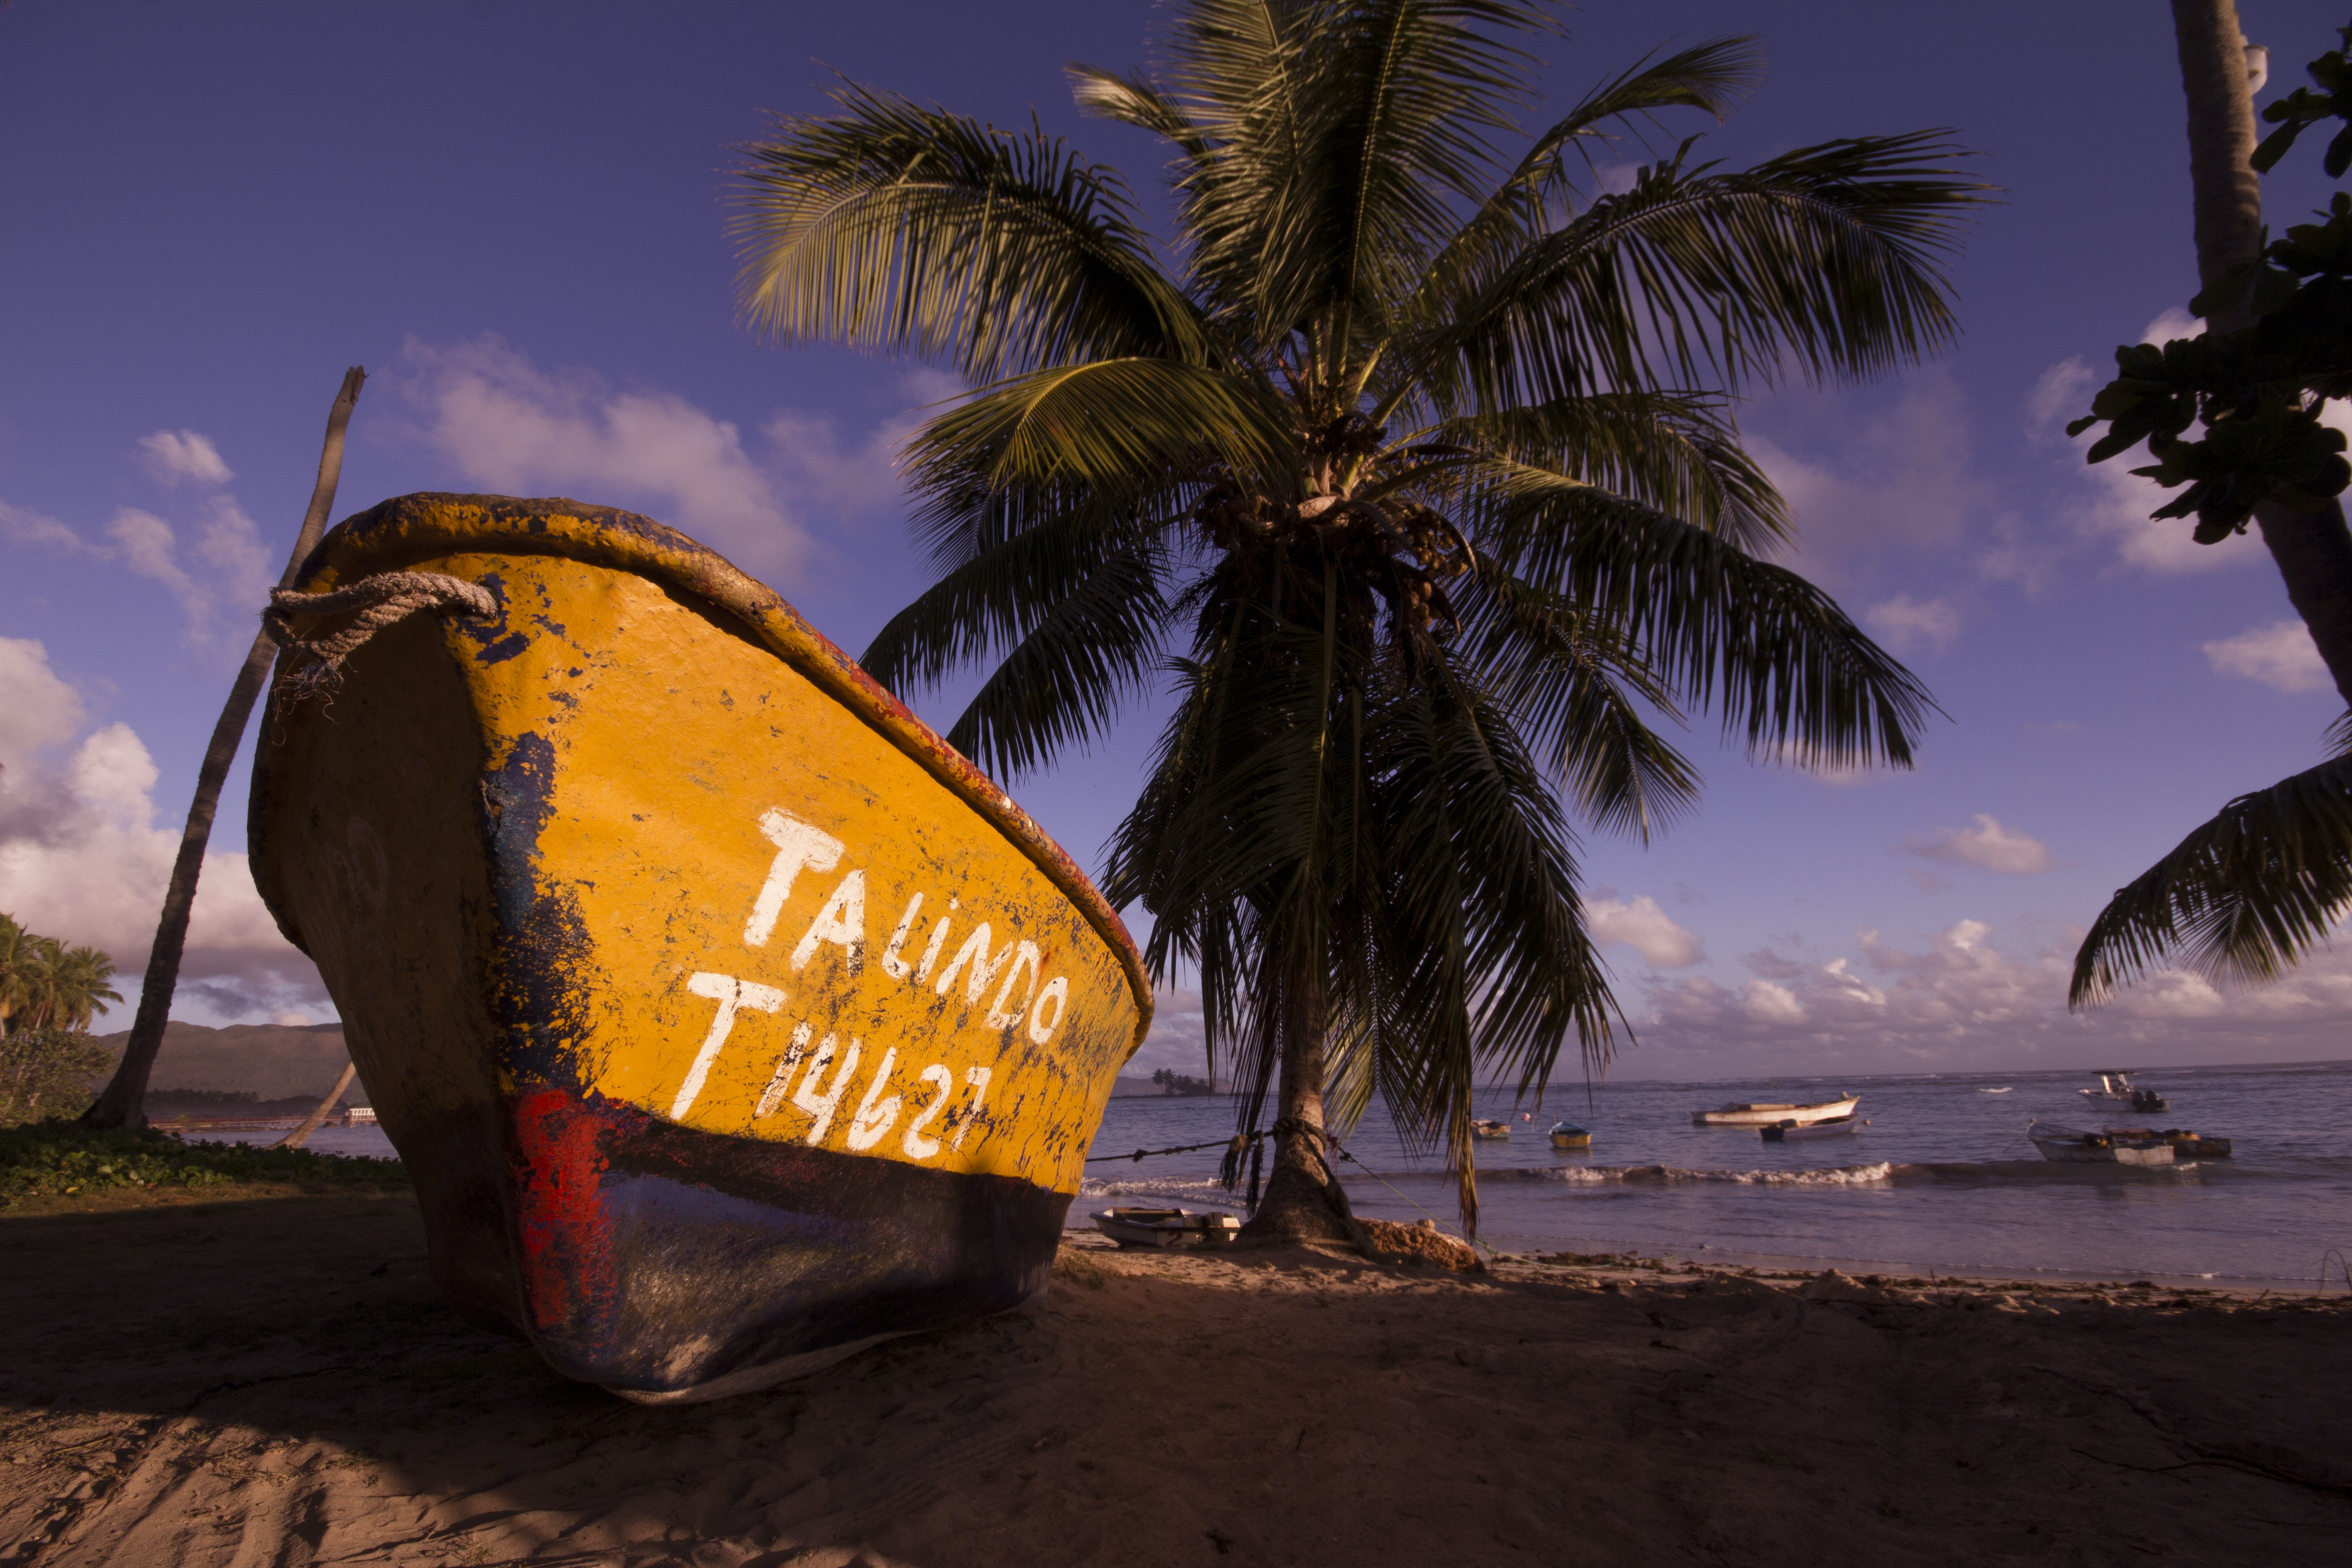 Brown and Black Boat on Shore Near Coconut Trees Under Blue Sky and Clouds